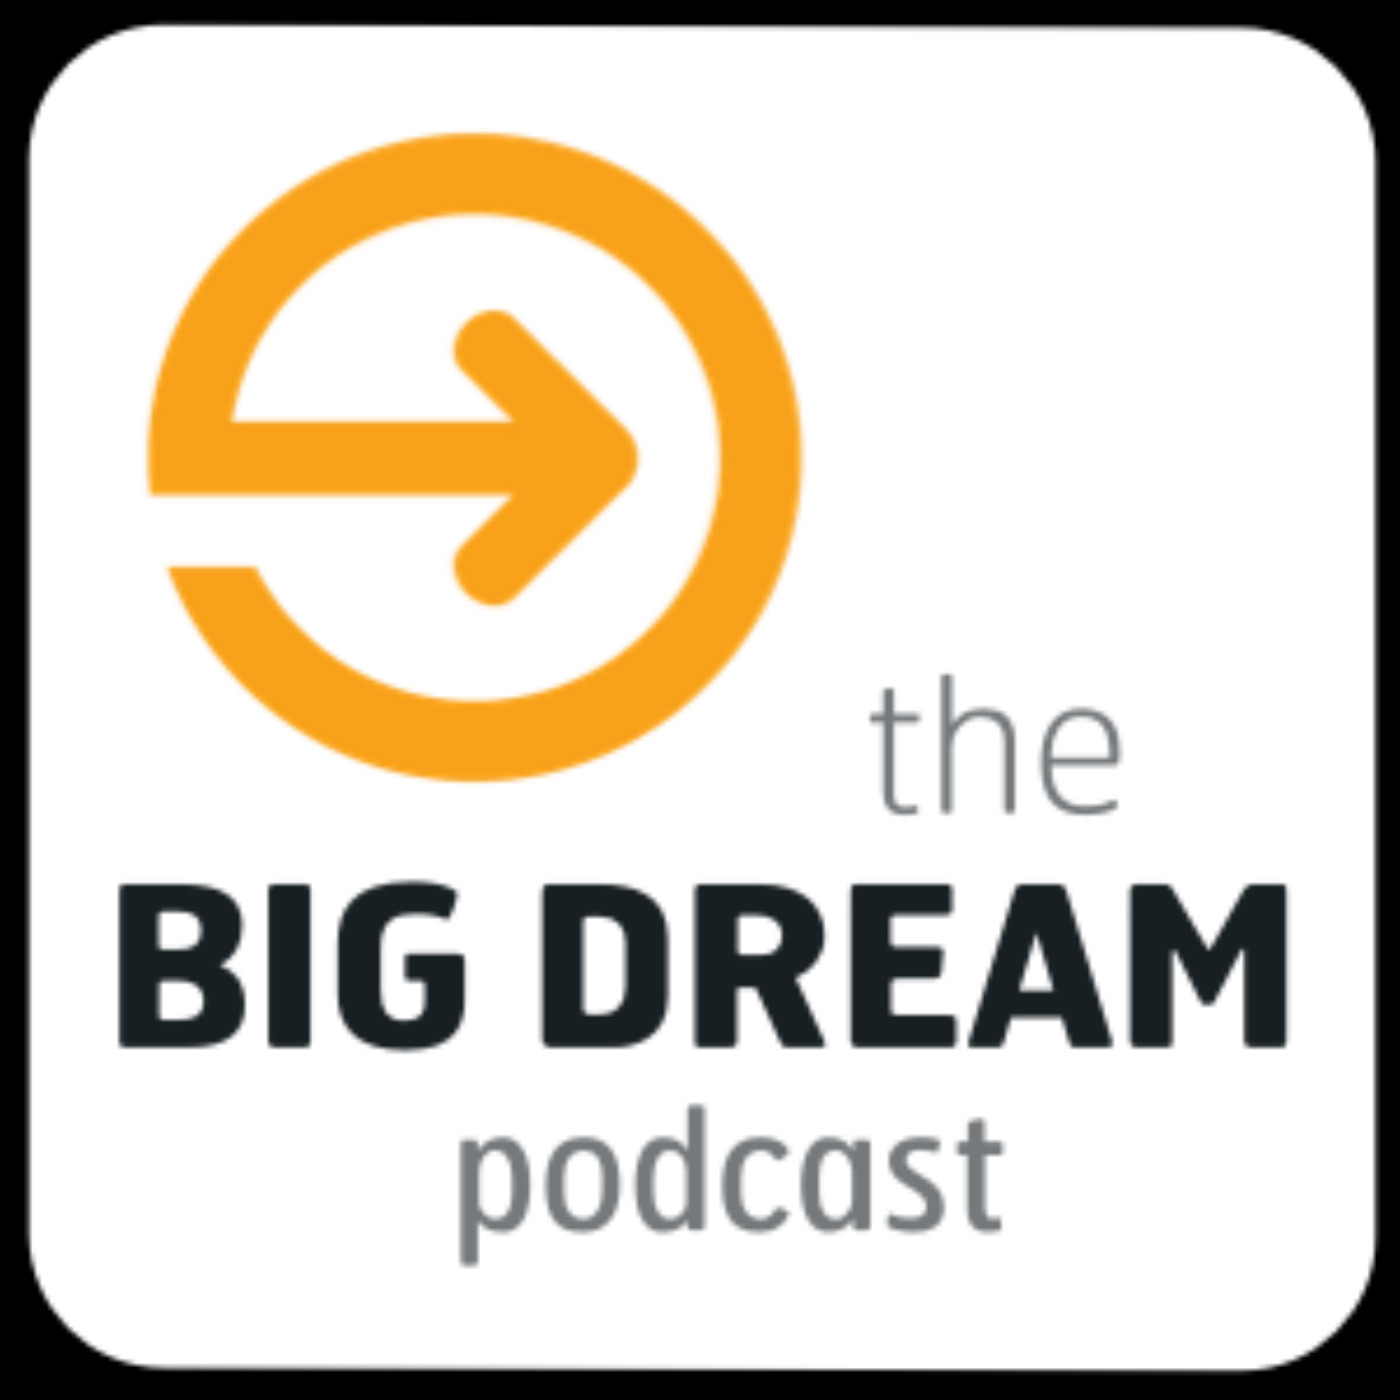 Big Dream Podcast